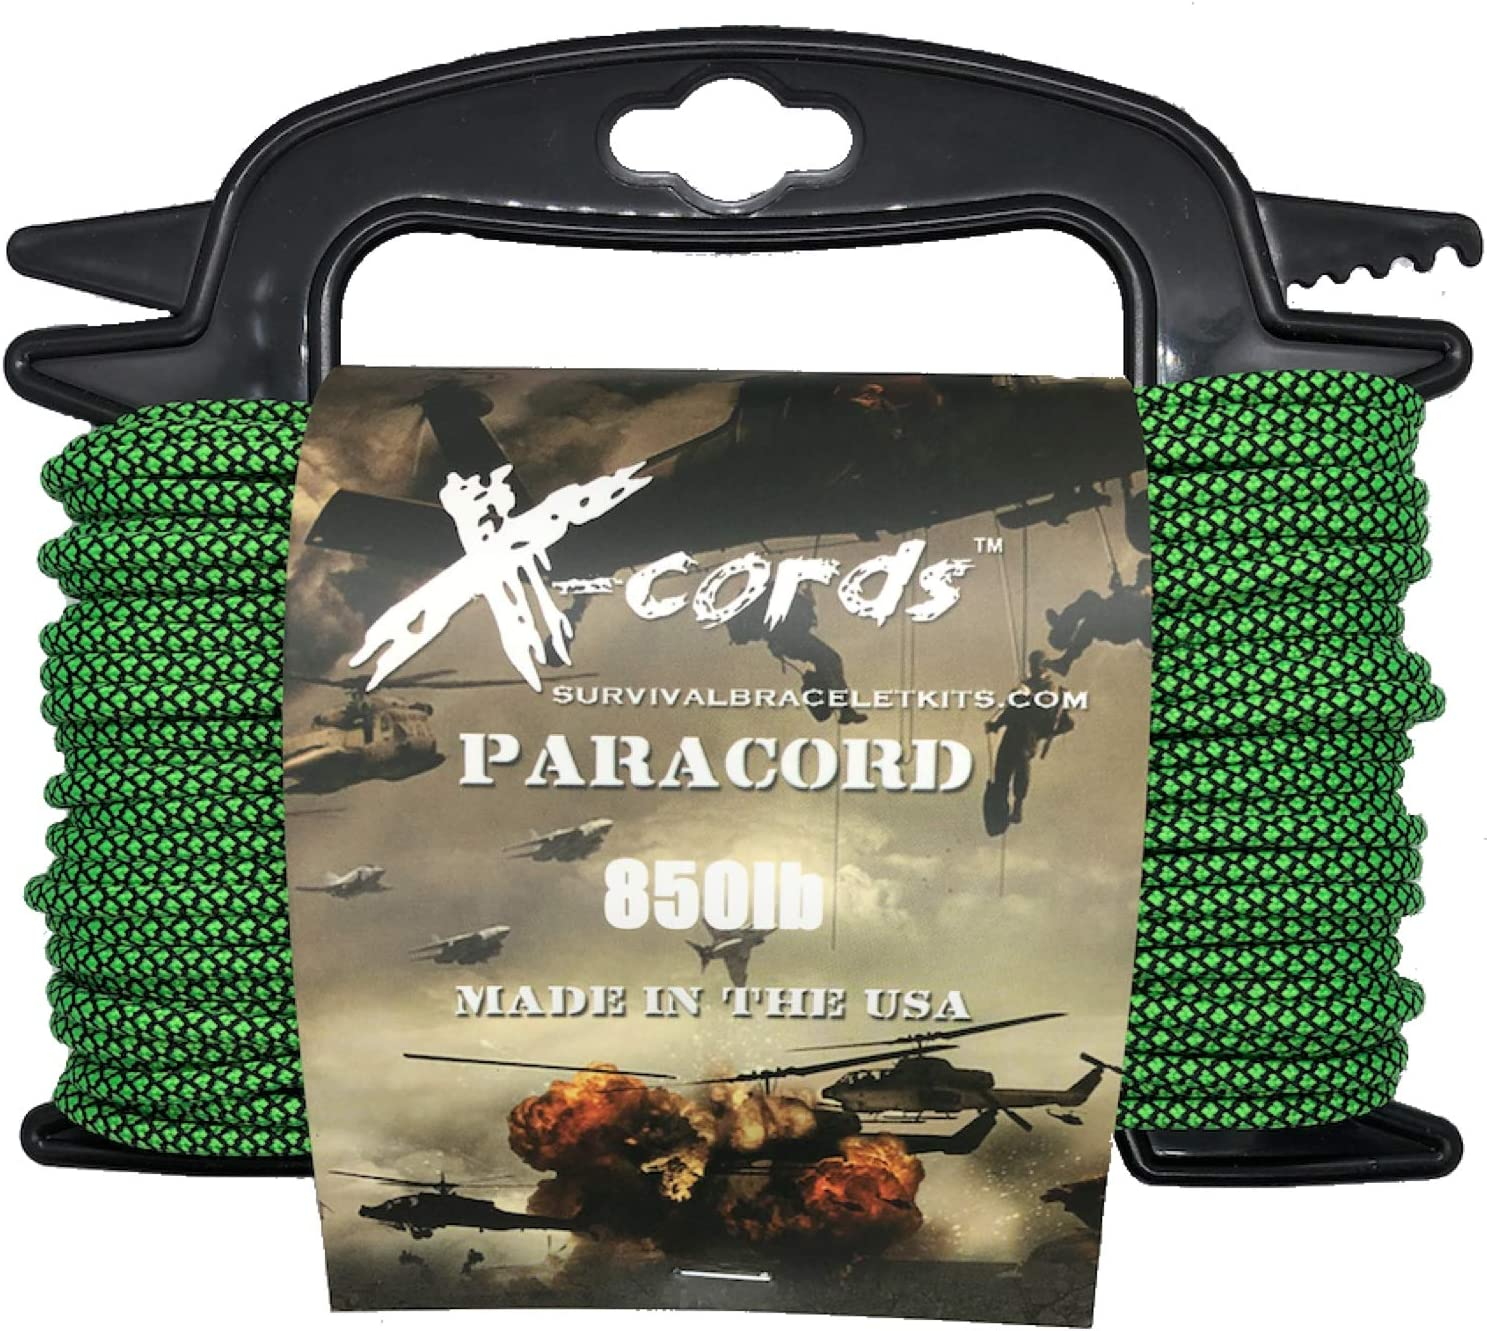 X-CORDS Paracord 850 Lb Stronger Than 550 and 750 Made by Us Government Certified Contractor (100' Zombie Green ON Spool 850 LB)